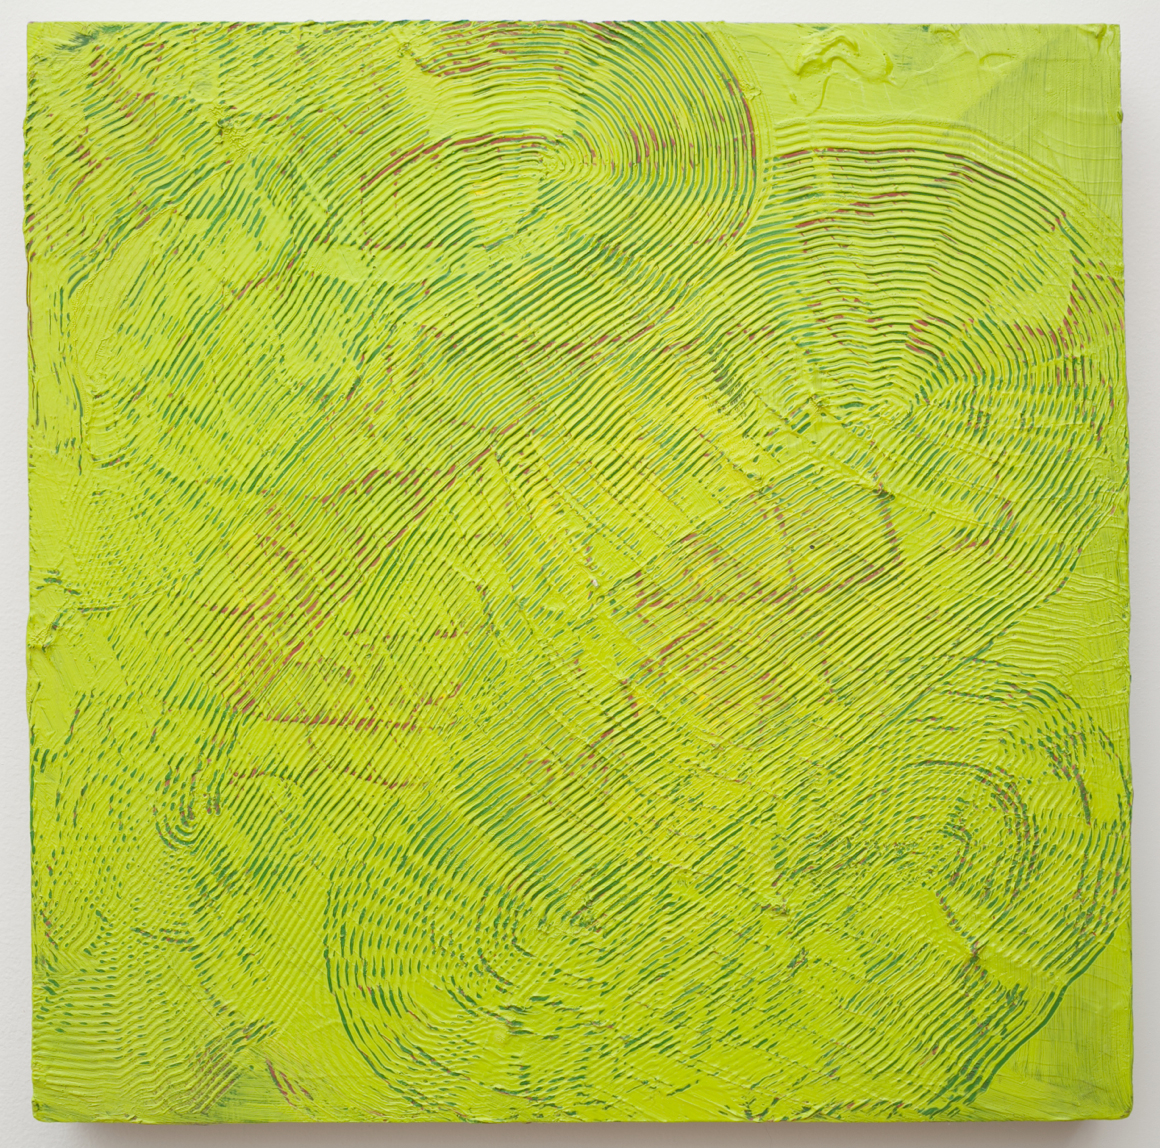 "<p><span class=""name"">Adam Bateman</span><br><em>Green</em><span class='media'>acrylic and spray paint on panel</span>15.5 x 15.5 in  (39.4 x 39.4 cm)<br>2014<br><a class='inquire' href='mailto:info@gildargallery.com?subject=Artwork Inquiry ABAT0009&body=I am interested in finding out more about Green by Adam Bateman'>Inquire</a></p>"